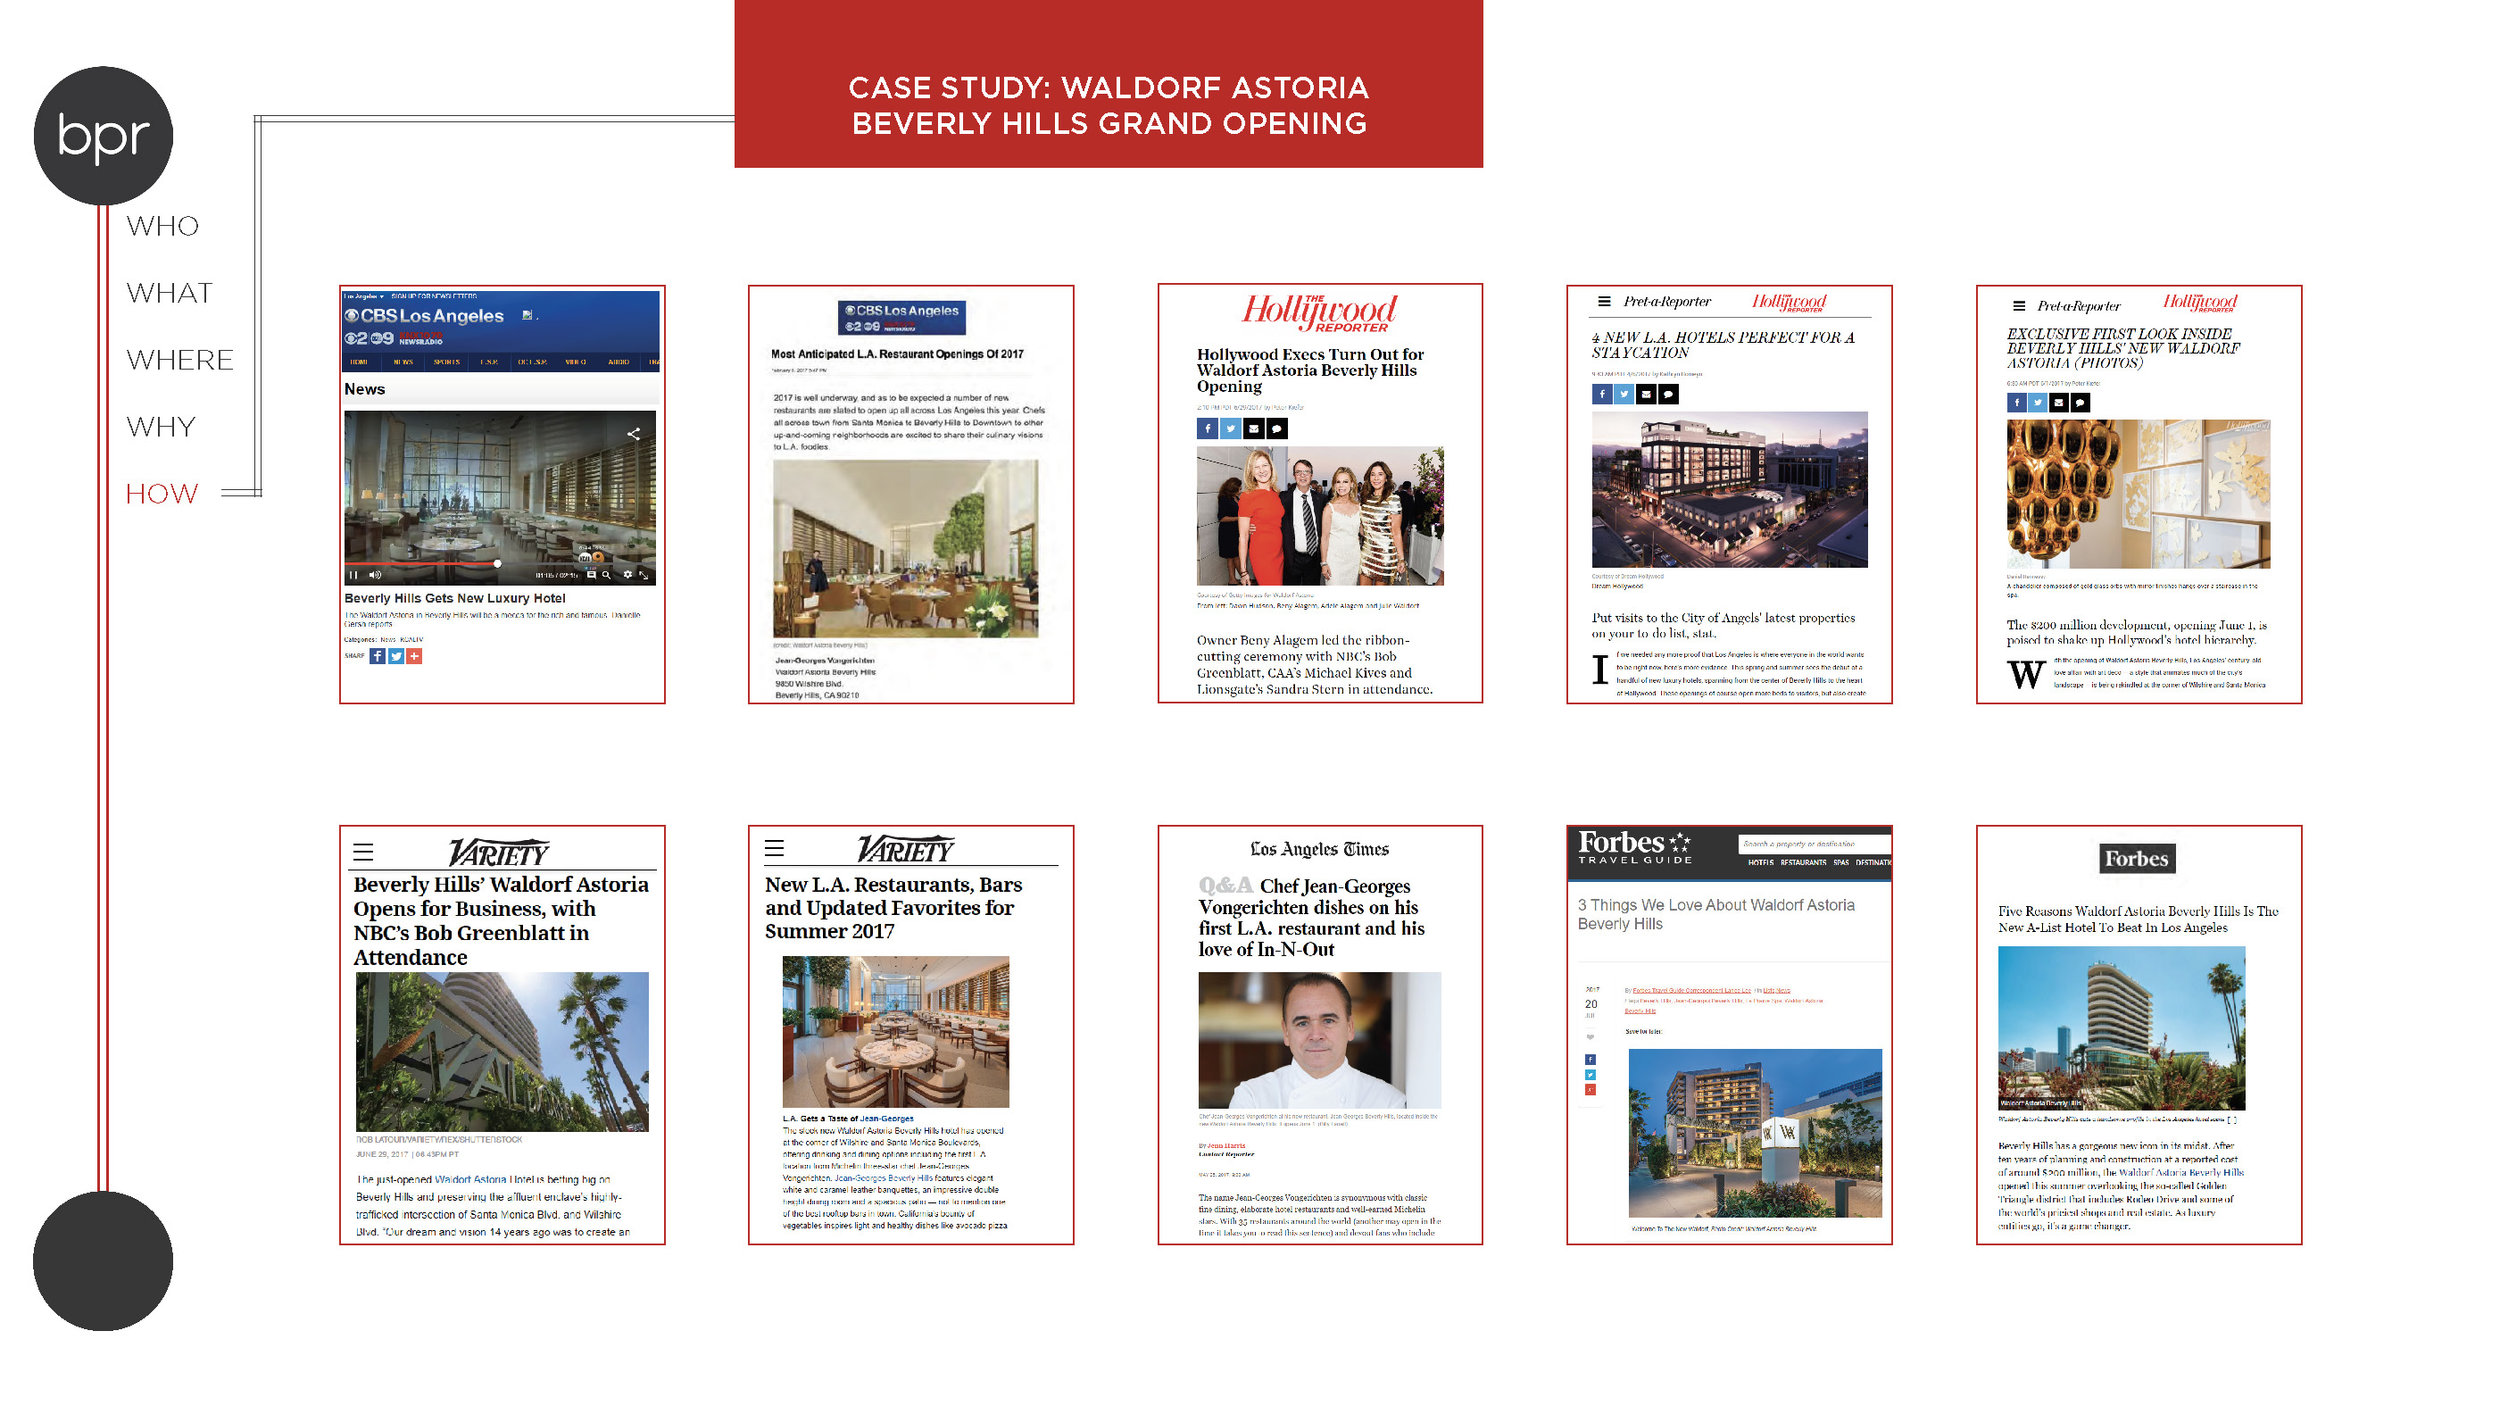 WABH Opening Case Study_Page_4.jpg